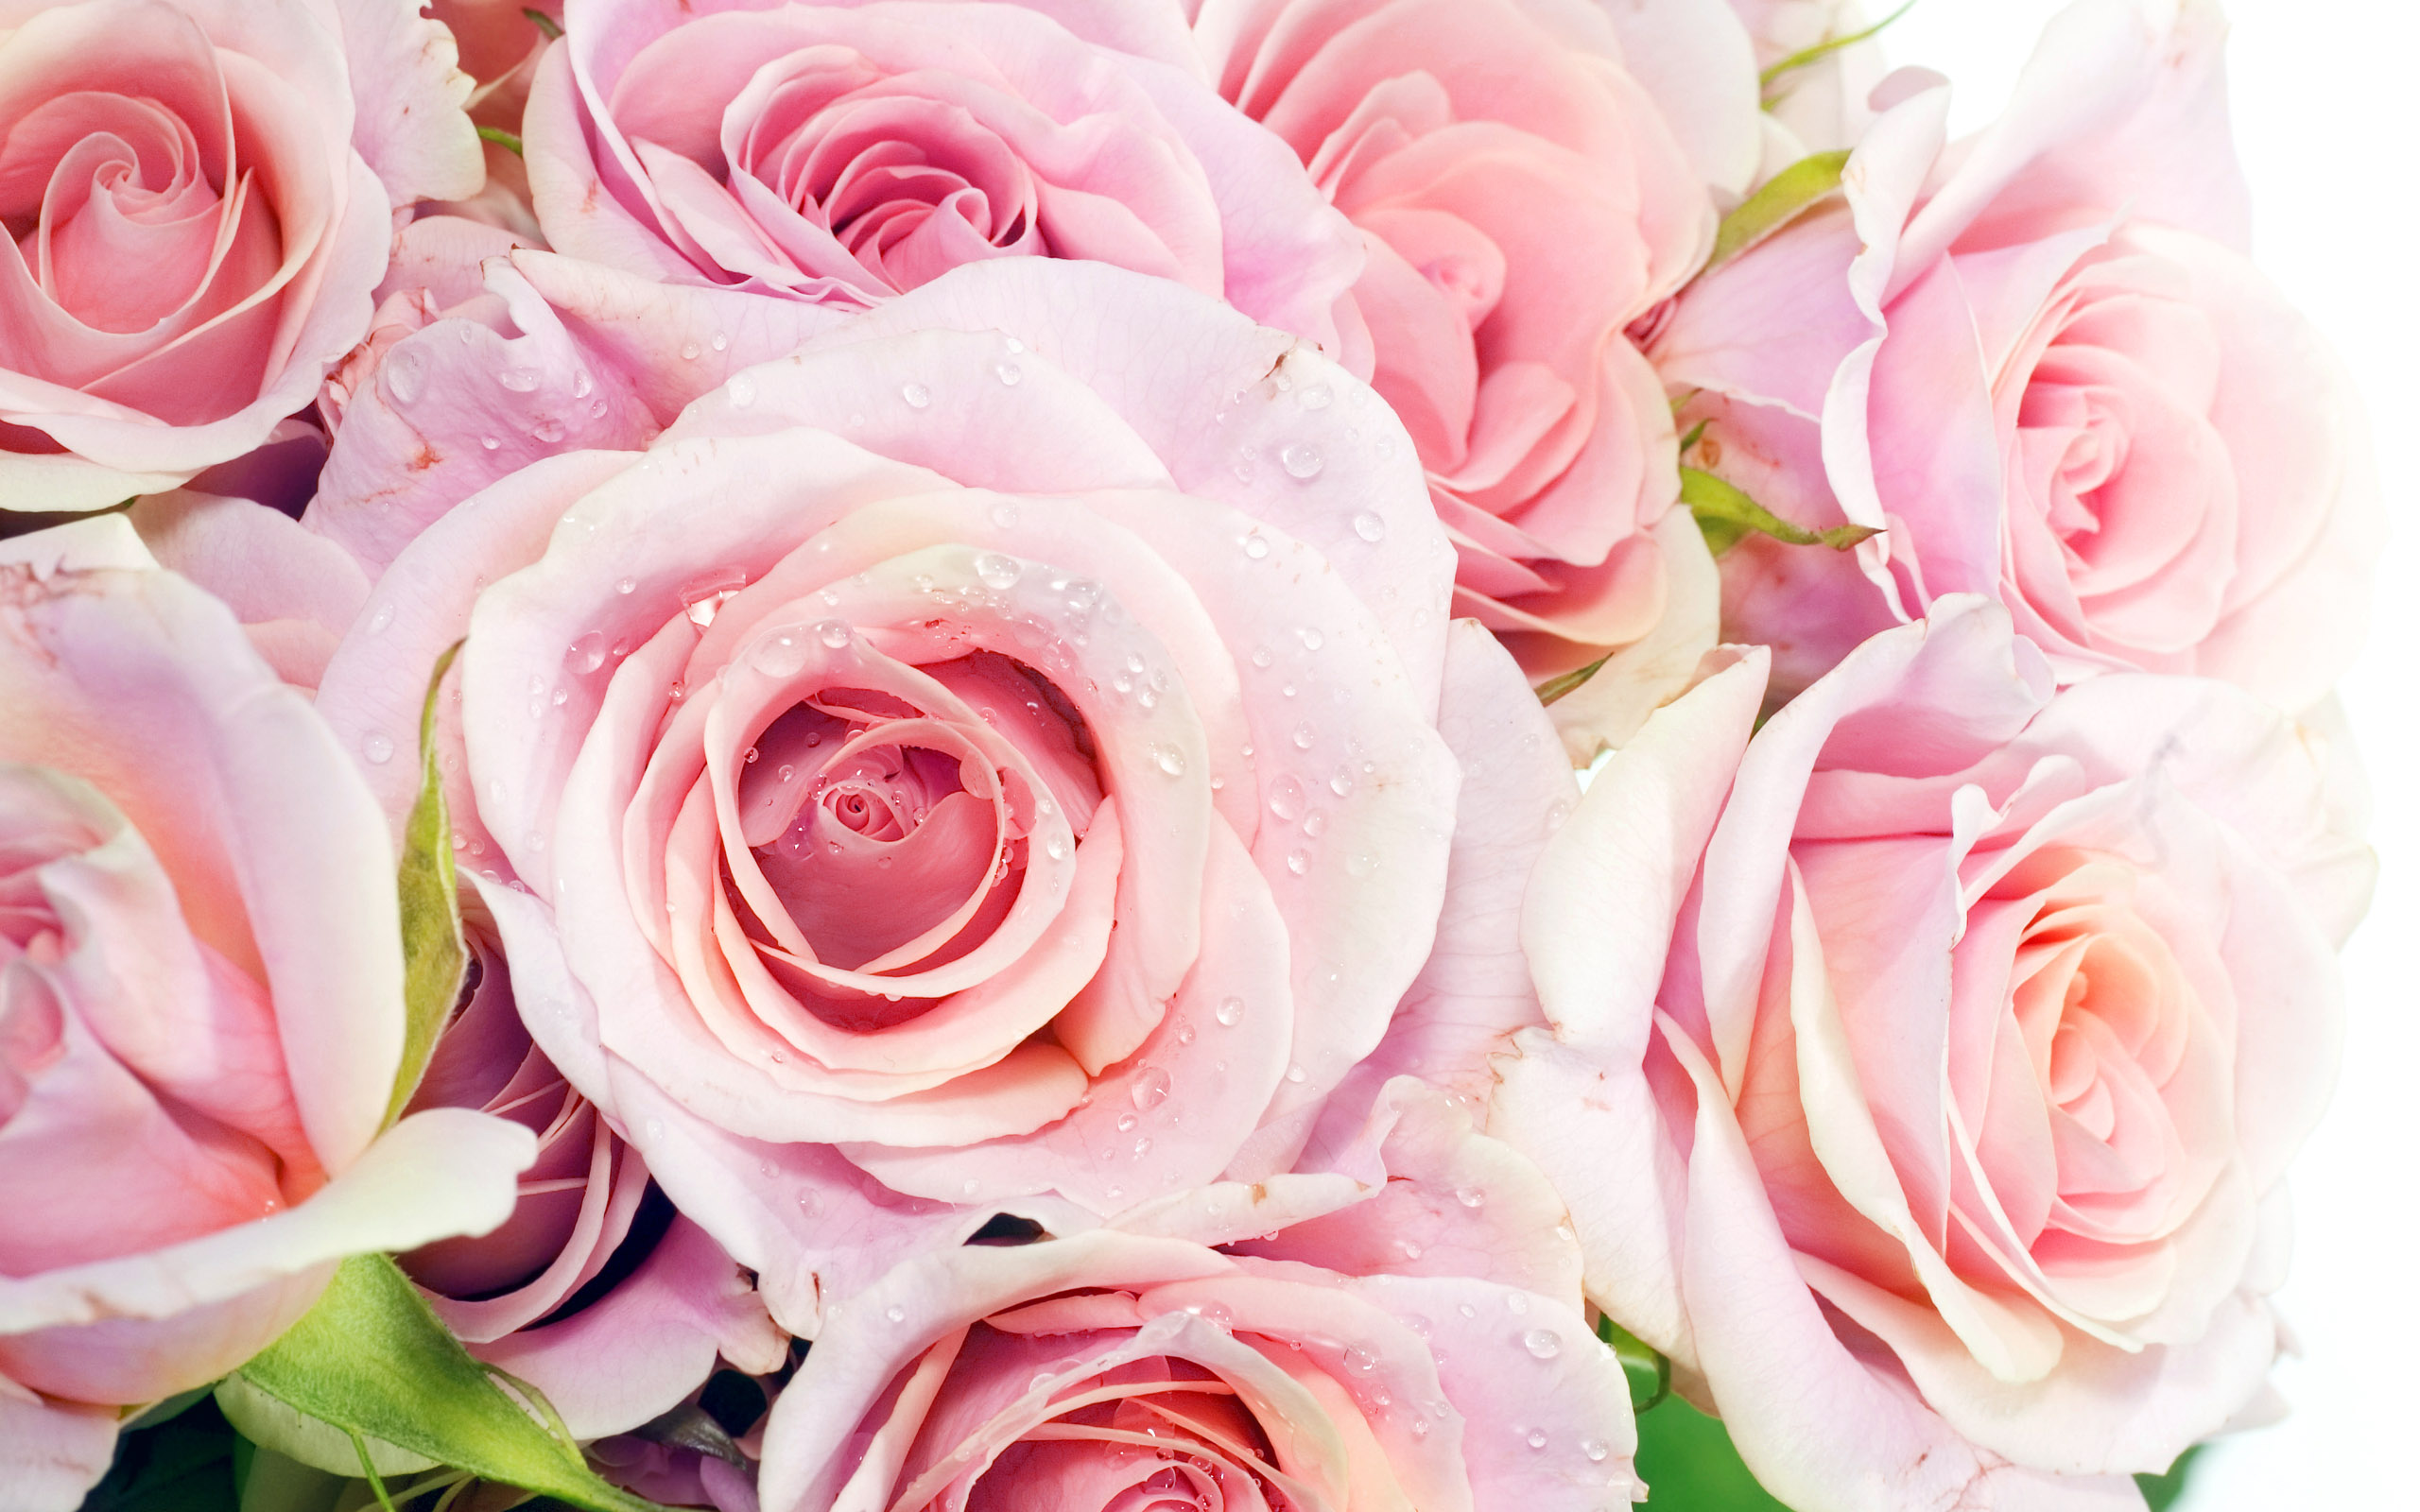 Pink roses backgrounds wallpaper high definition high quality pink roses backgrounds mightylinksfo